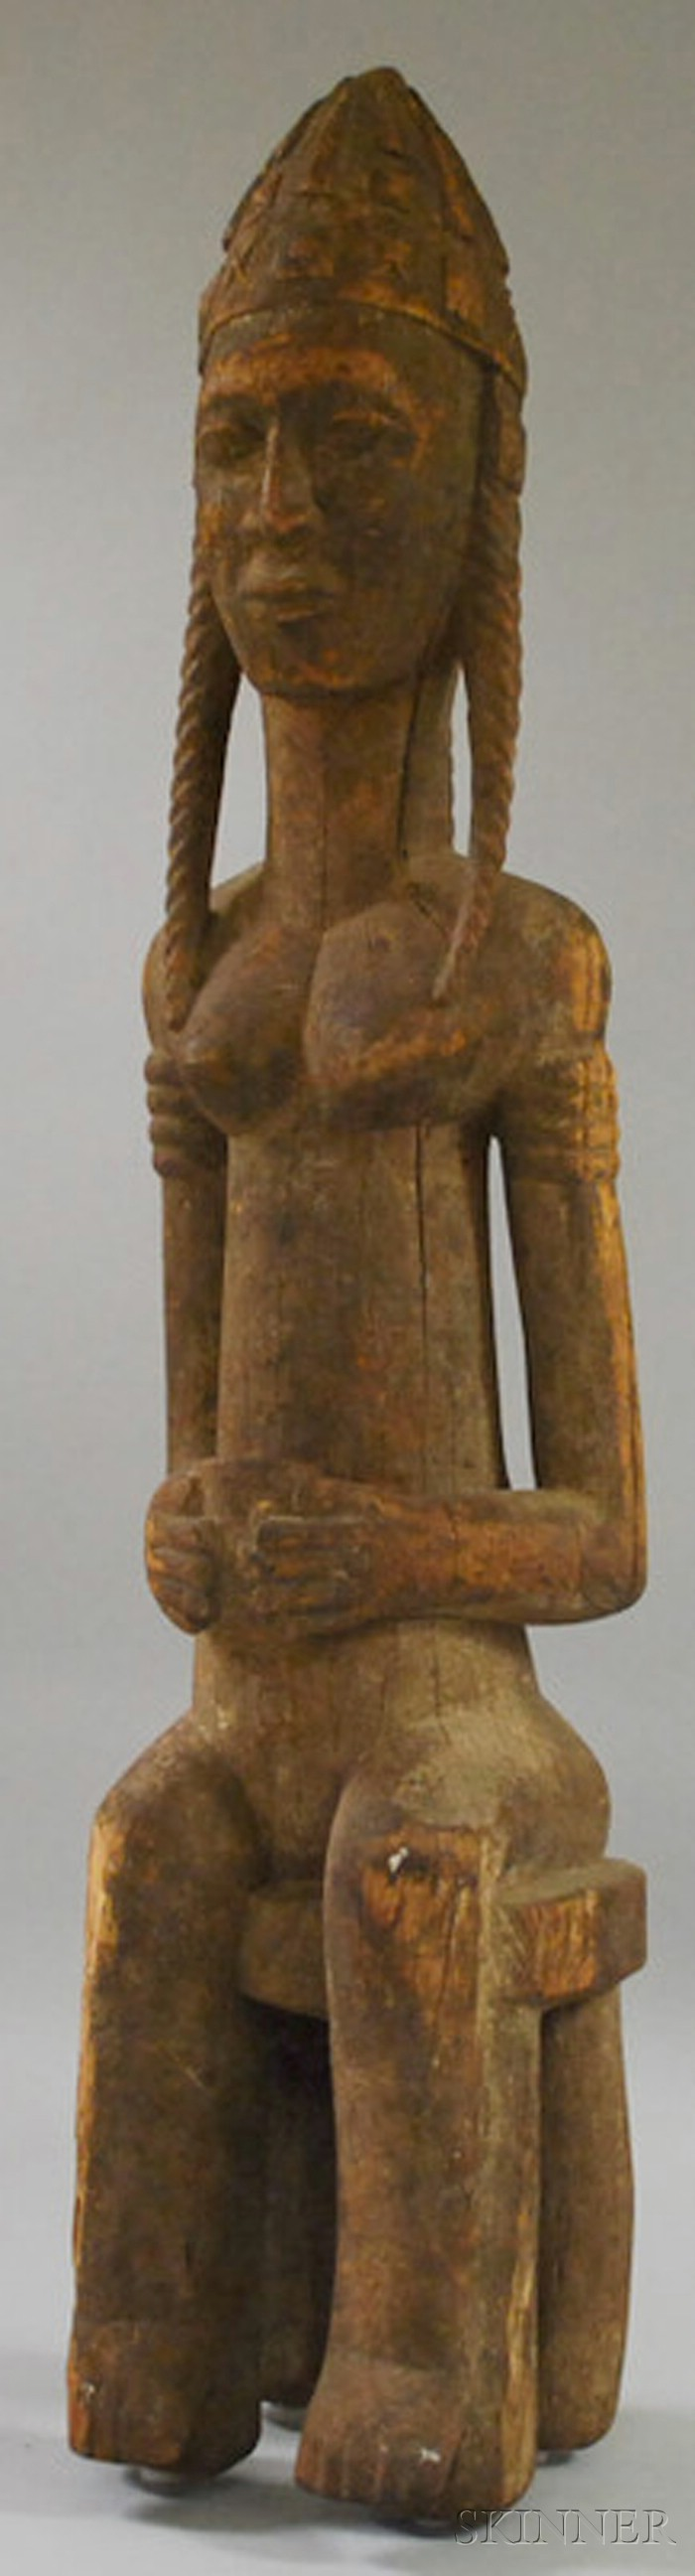 Bamana-style Carved Wooden African Female Figure